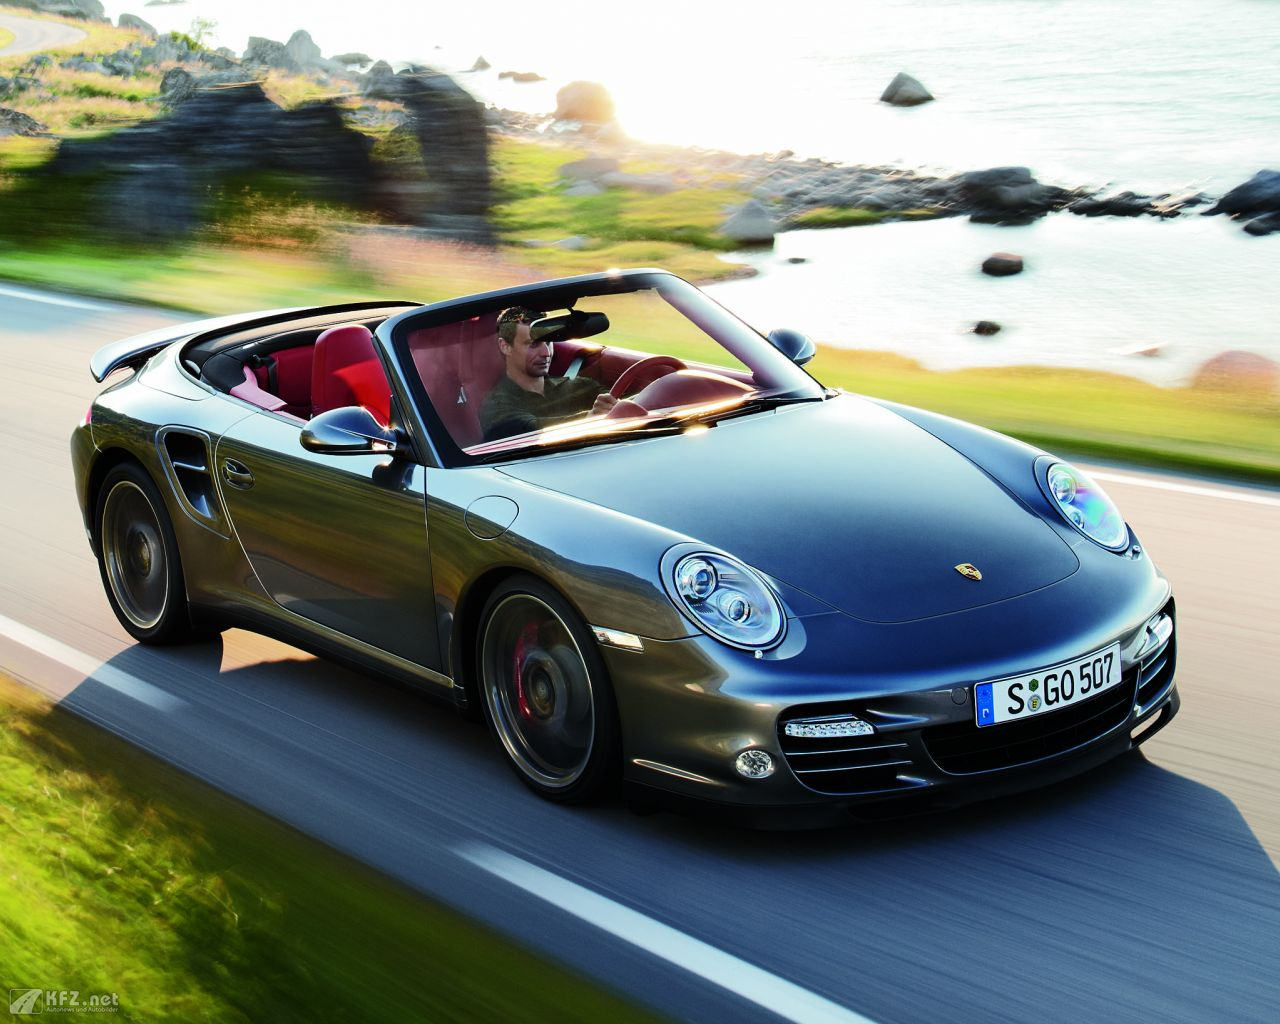 porsche-911-turbo-coupe-1280x1024-15